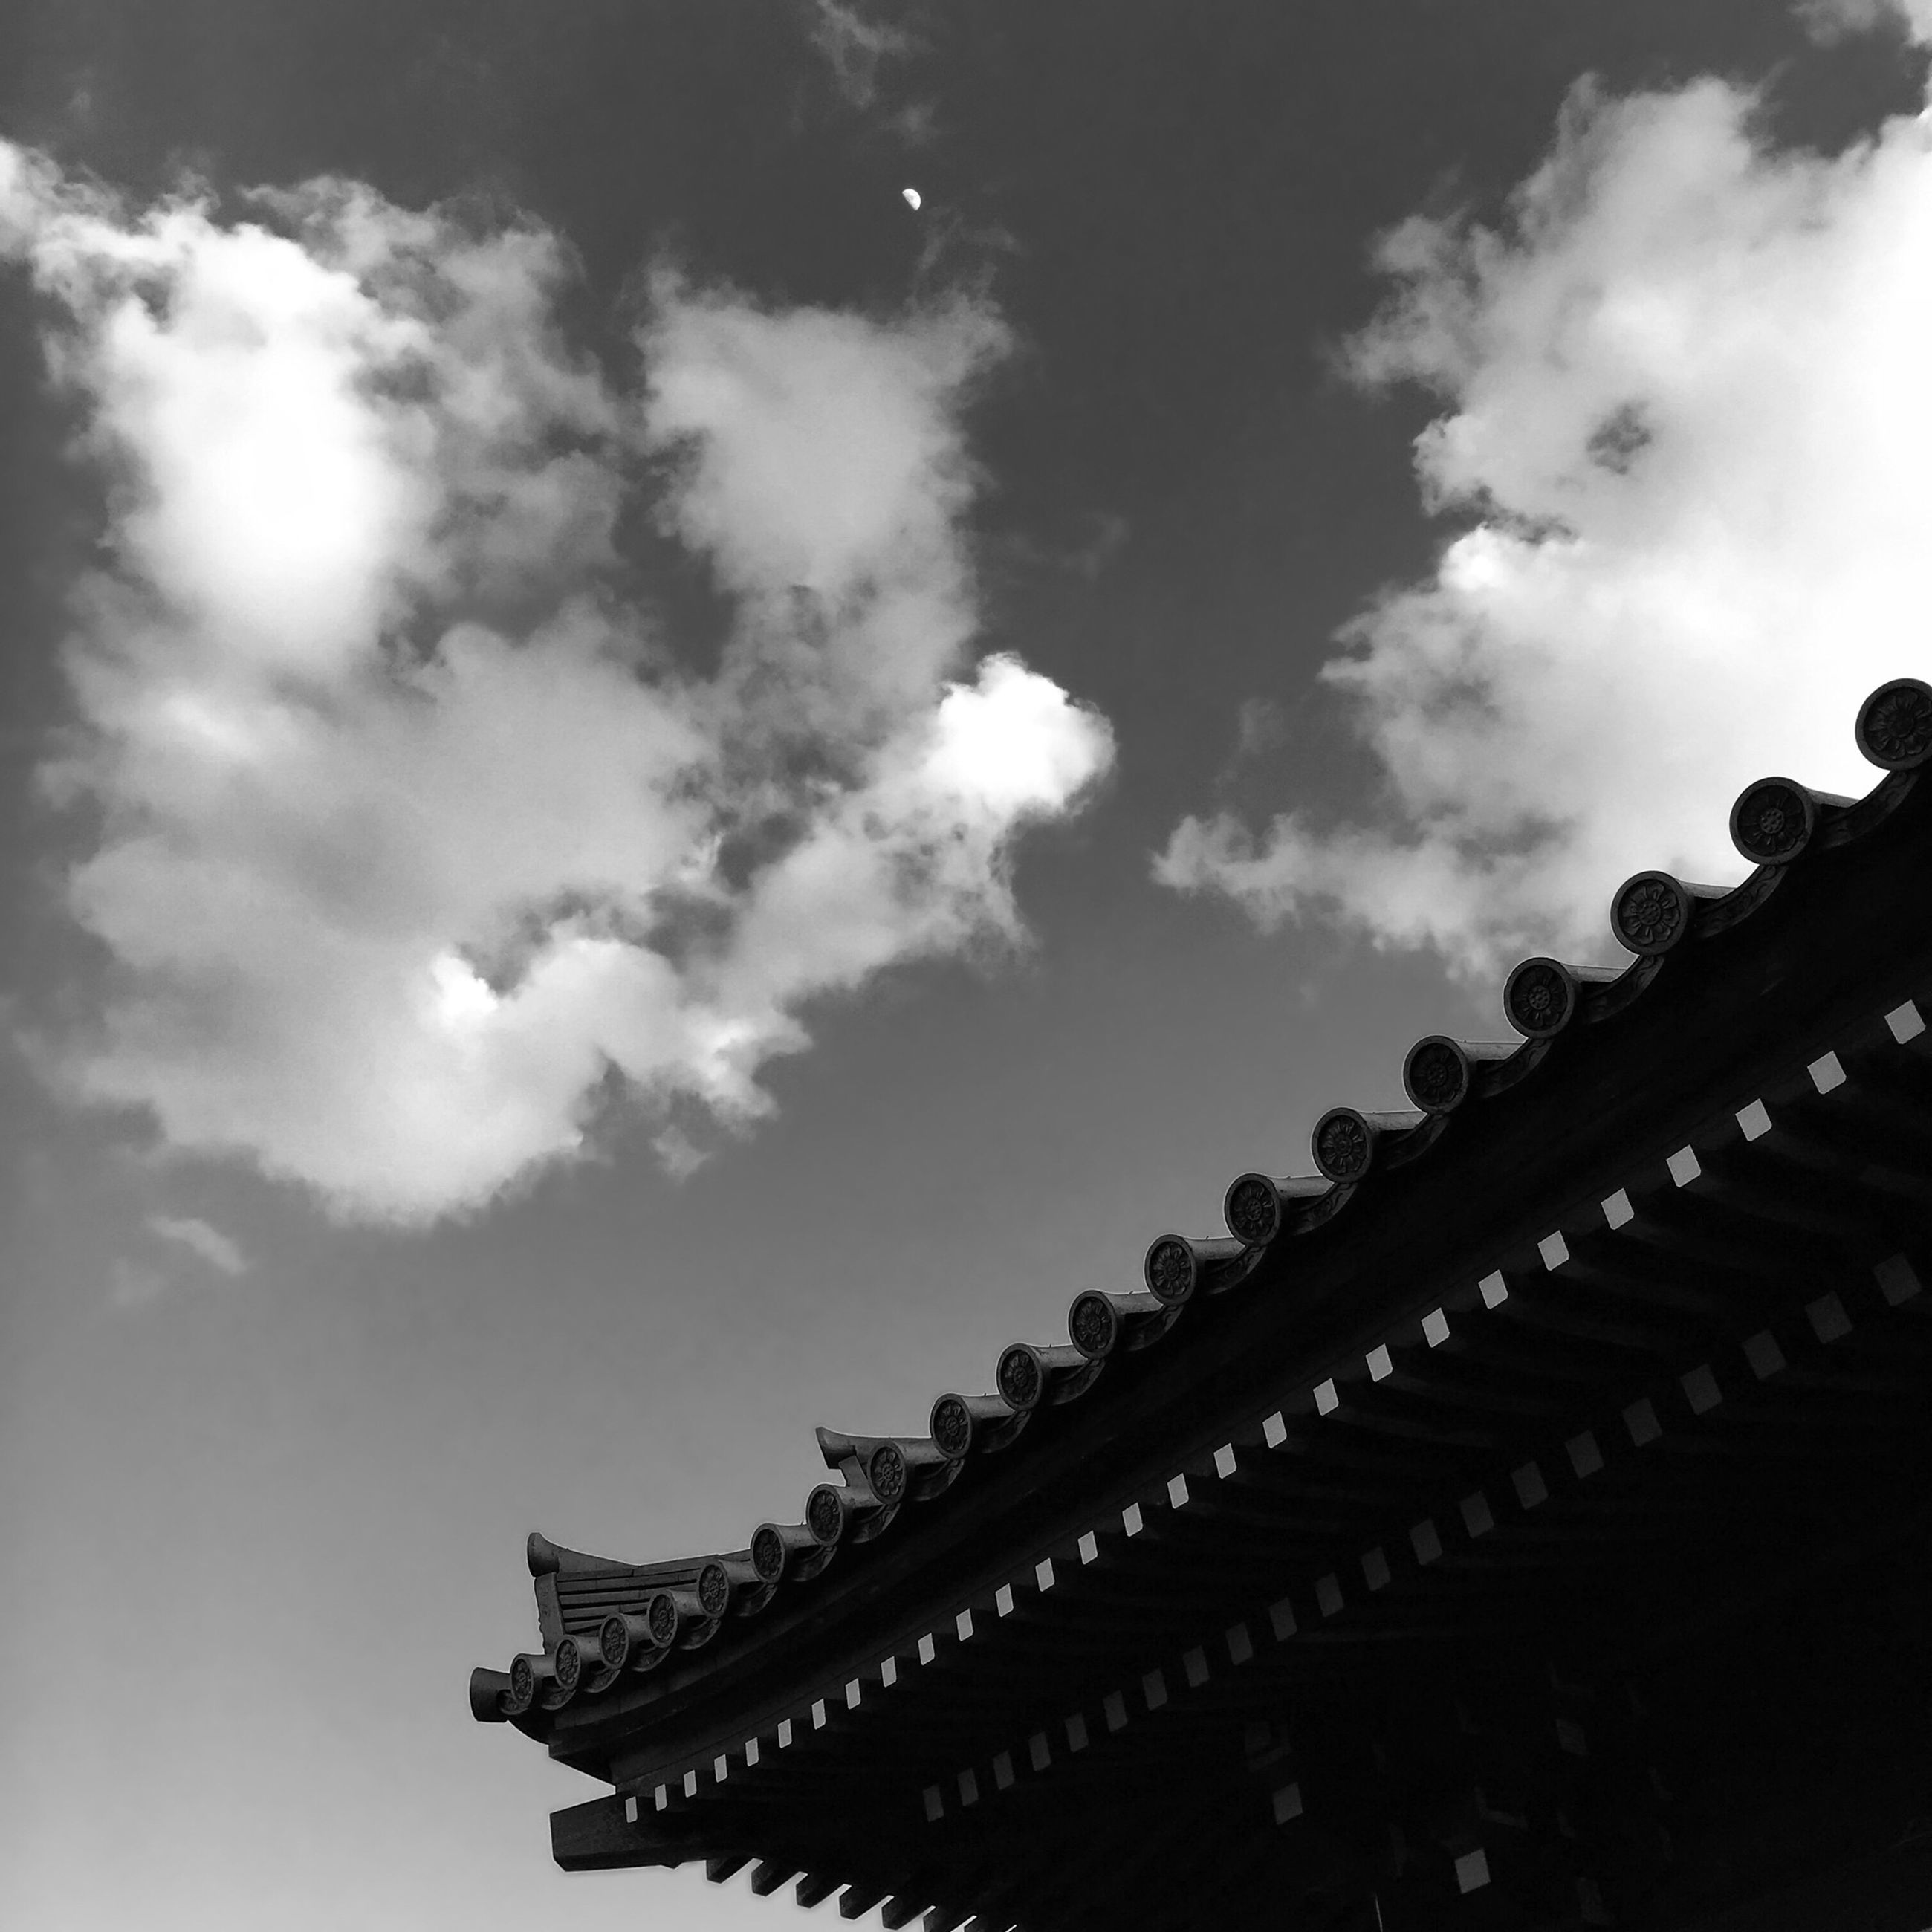 low angle view, sky, architecture, built structure, building exterior, cloud - sky, roof, place of worship, religion, high section, cloud, spirituality, outdoors, silhouette, day, no people, temple - building, cloudy, building, sunlight